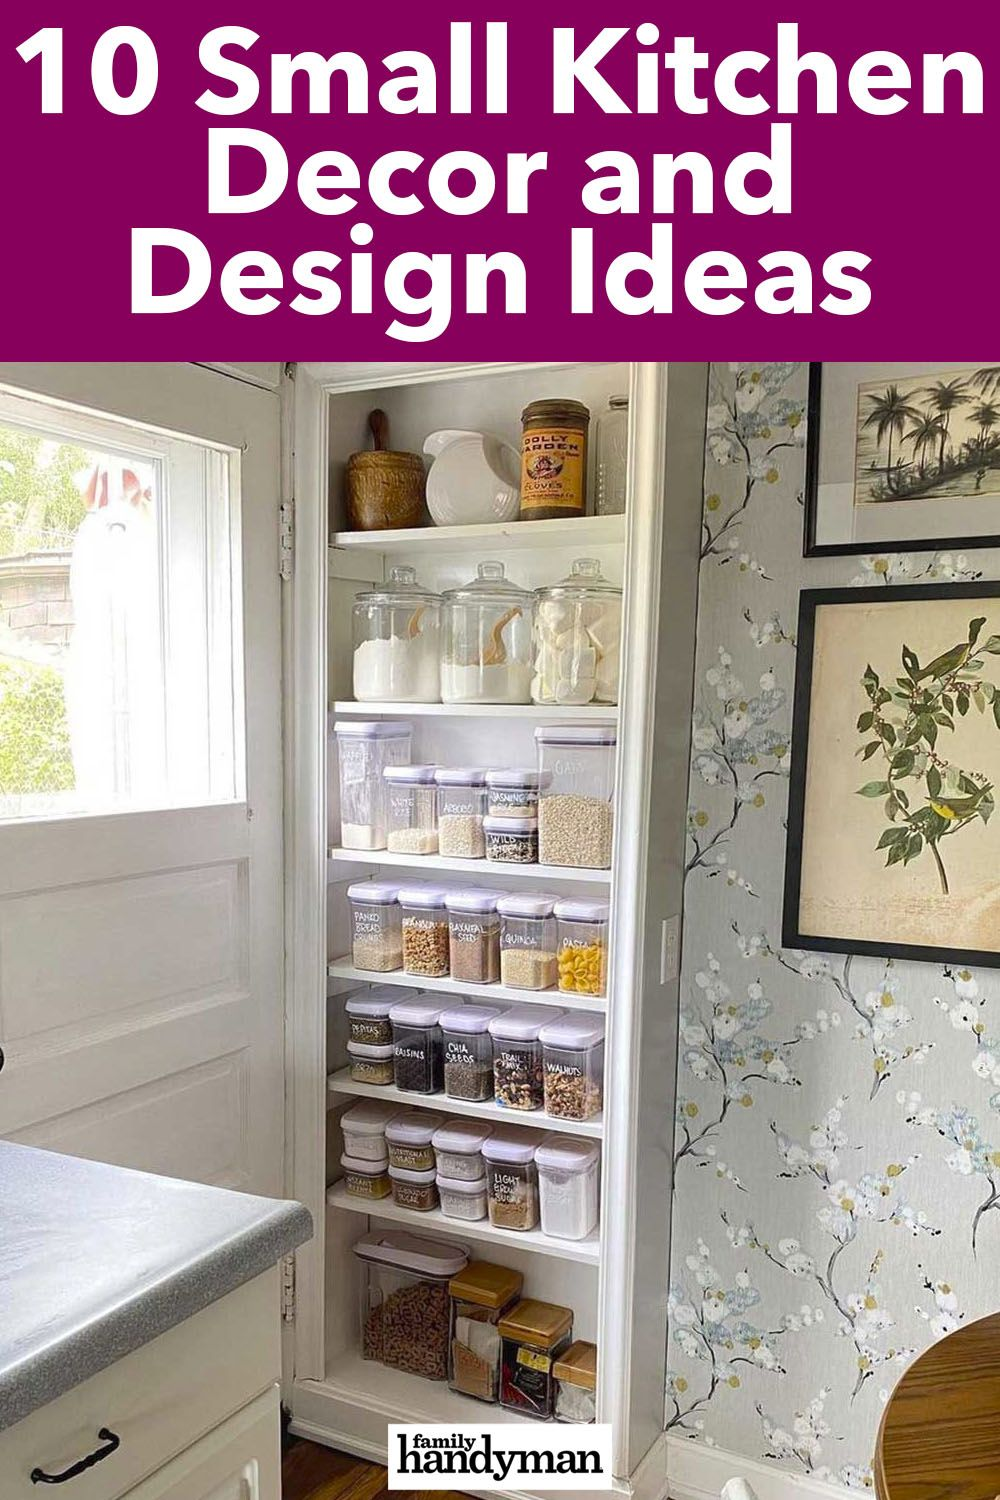 10 Small Kitchen Decor And Design Ideas In 2021 Designs Layout